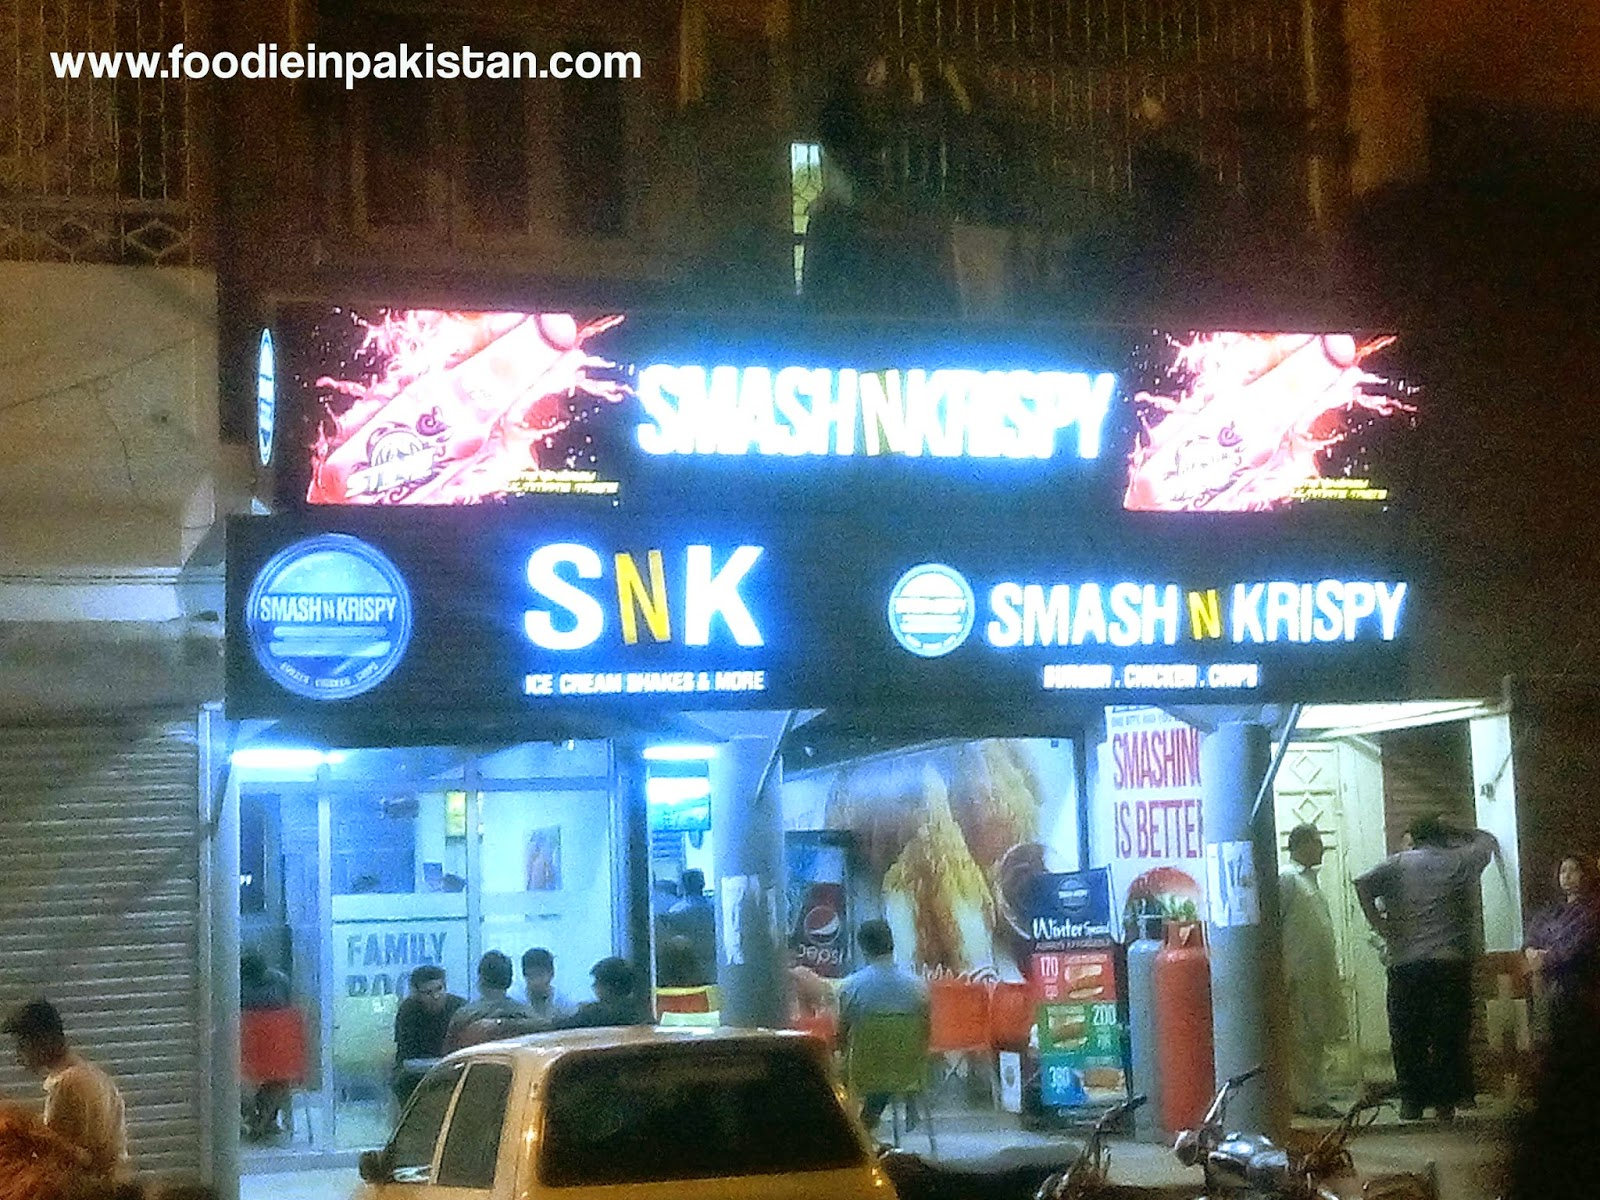 Smash n Krispy at Gulberg Karachi